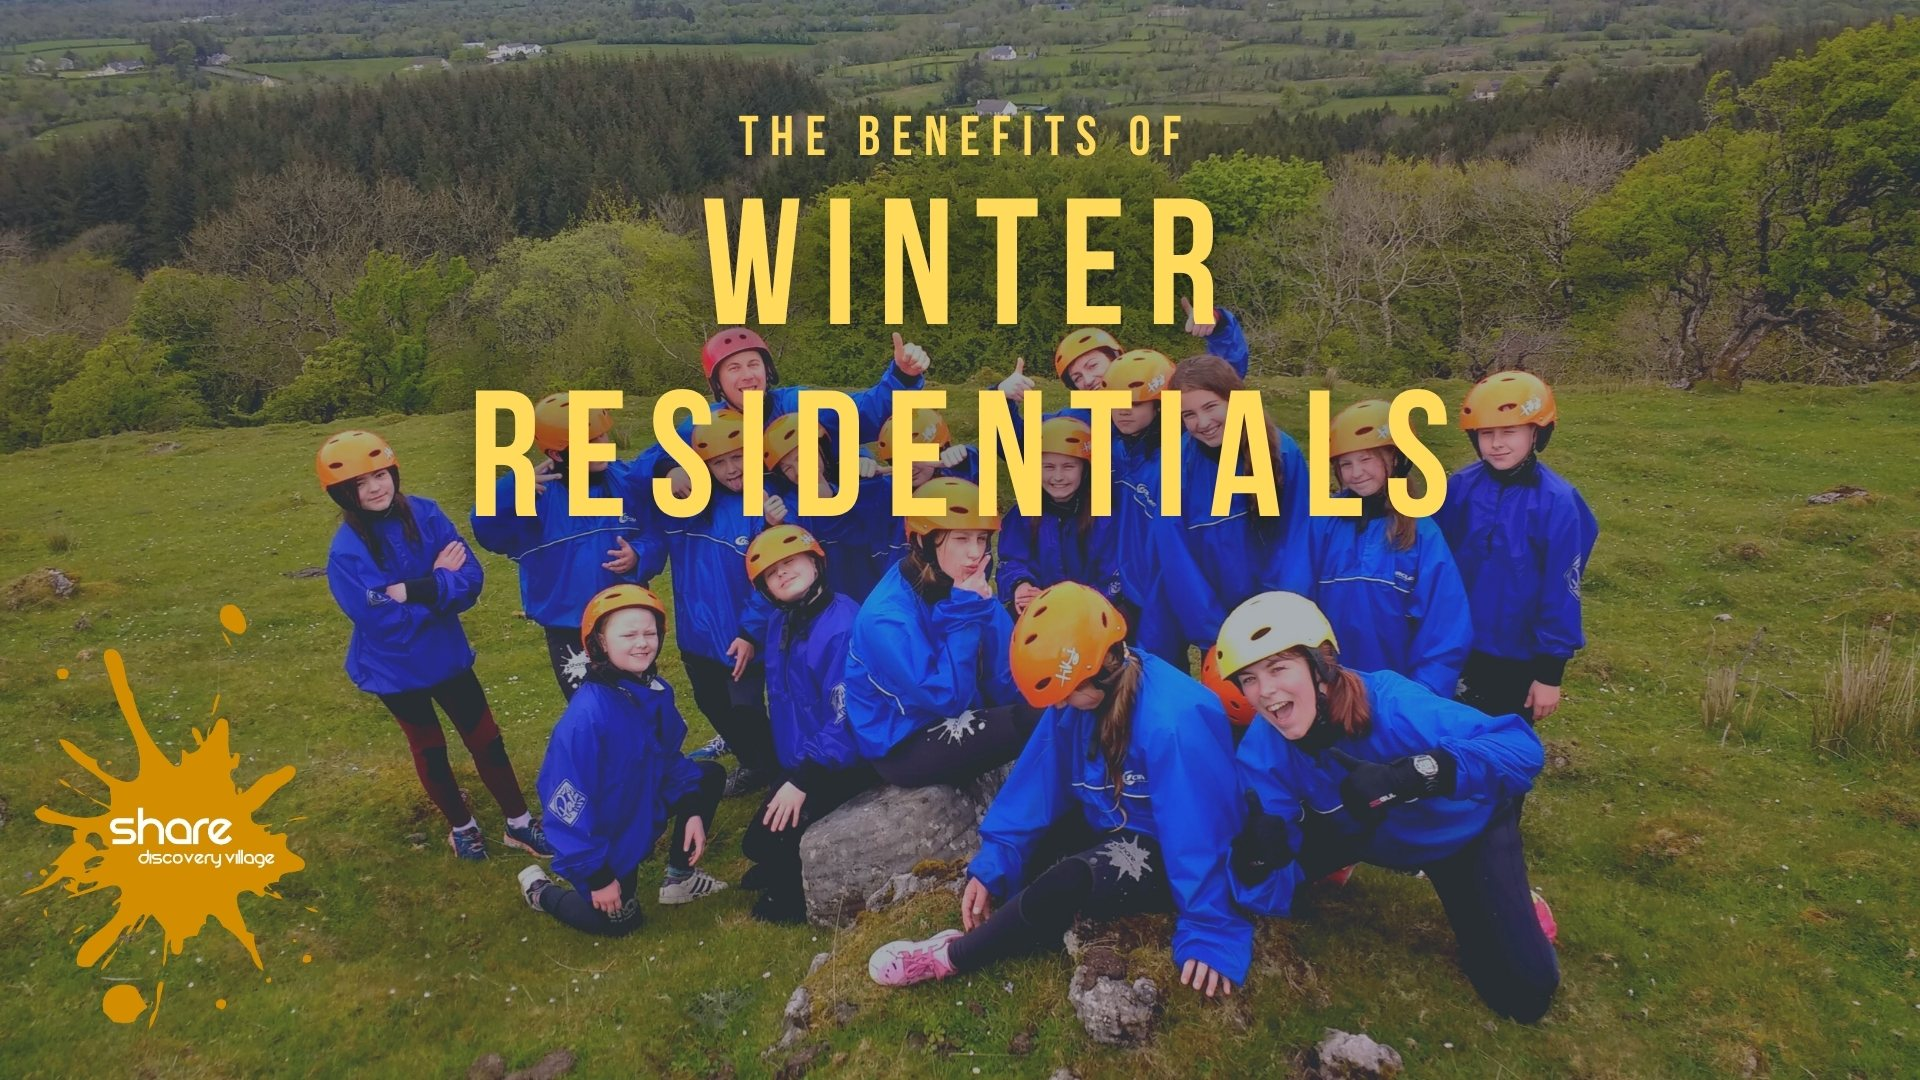 Benefits of Winter Residentials for Schools & Youth Groups